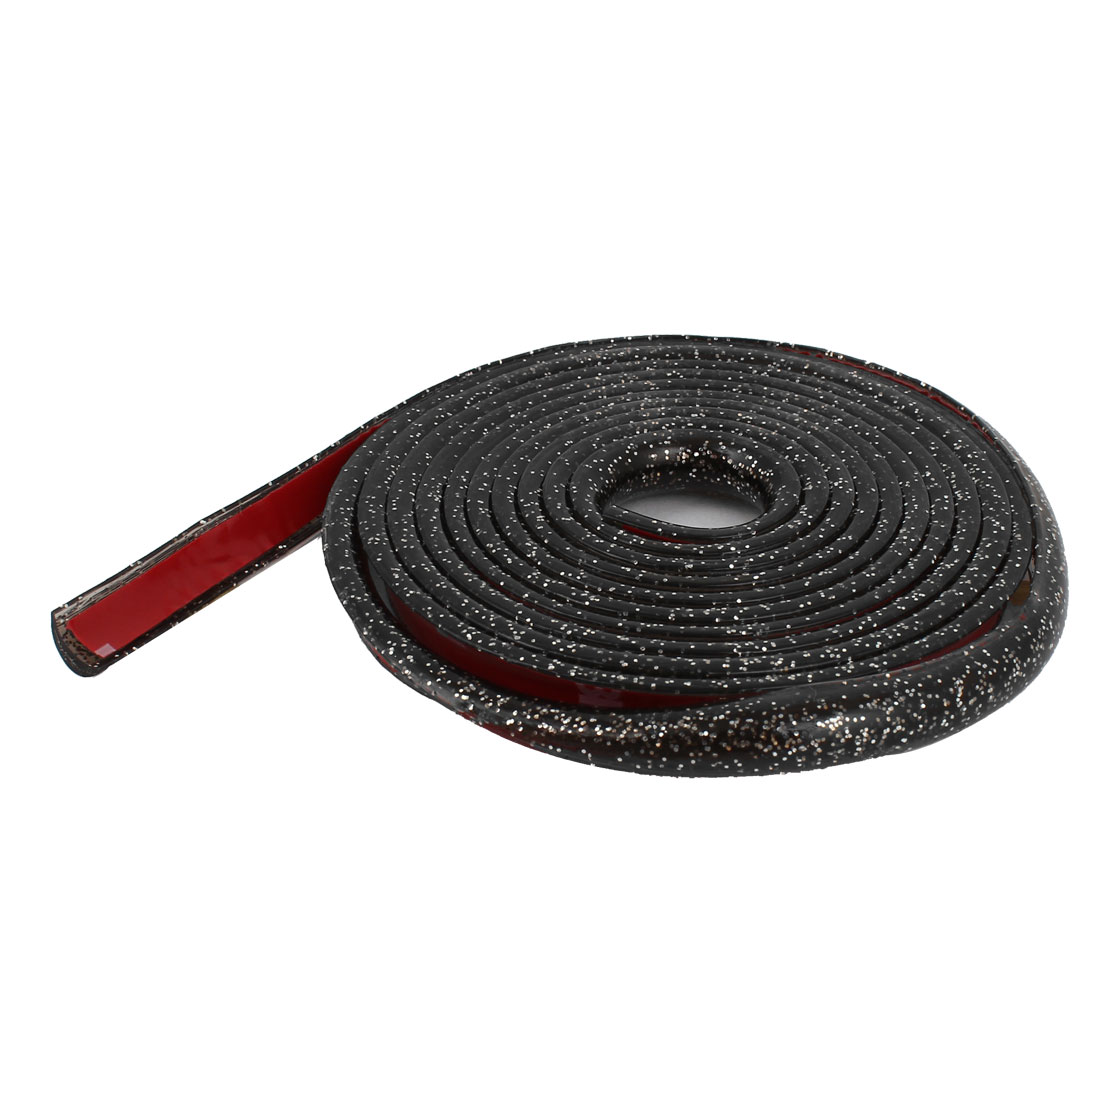 Glitter Black Plastic Slim Car Decorative Moulding Trim Strip 2M Long